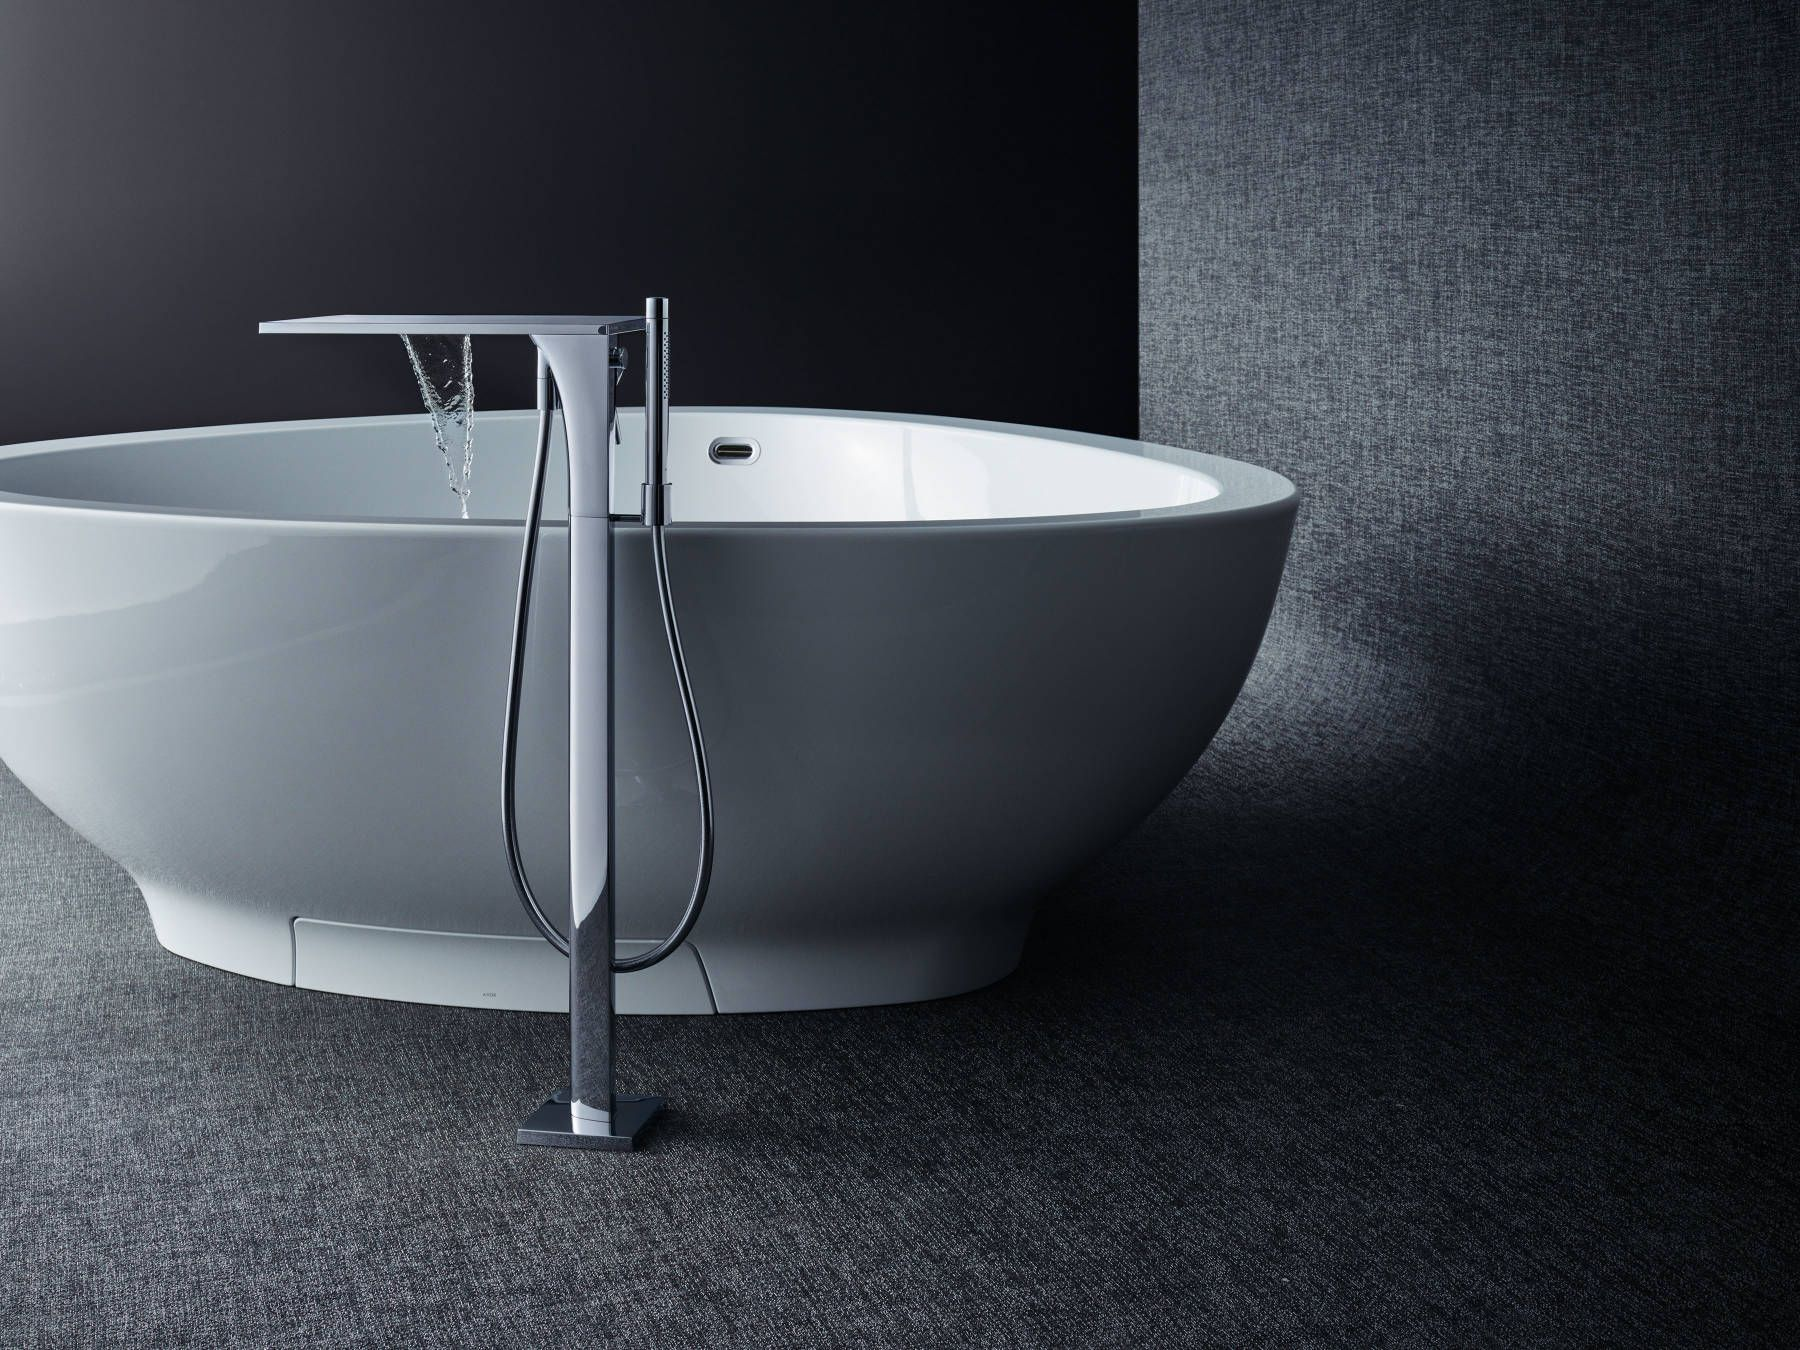 Axor Massaud Bath Tub Organic Design Inspired By Nature Like A Lake The Free Standing Bath Tub Is An Oasis Of Calm In T Badezimmer Design Design Waschtisch